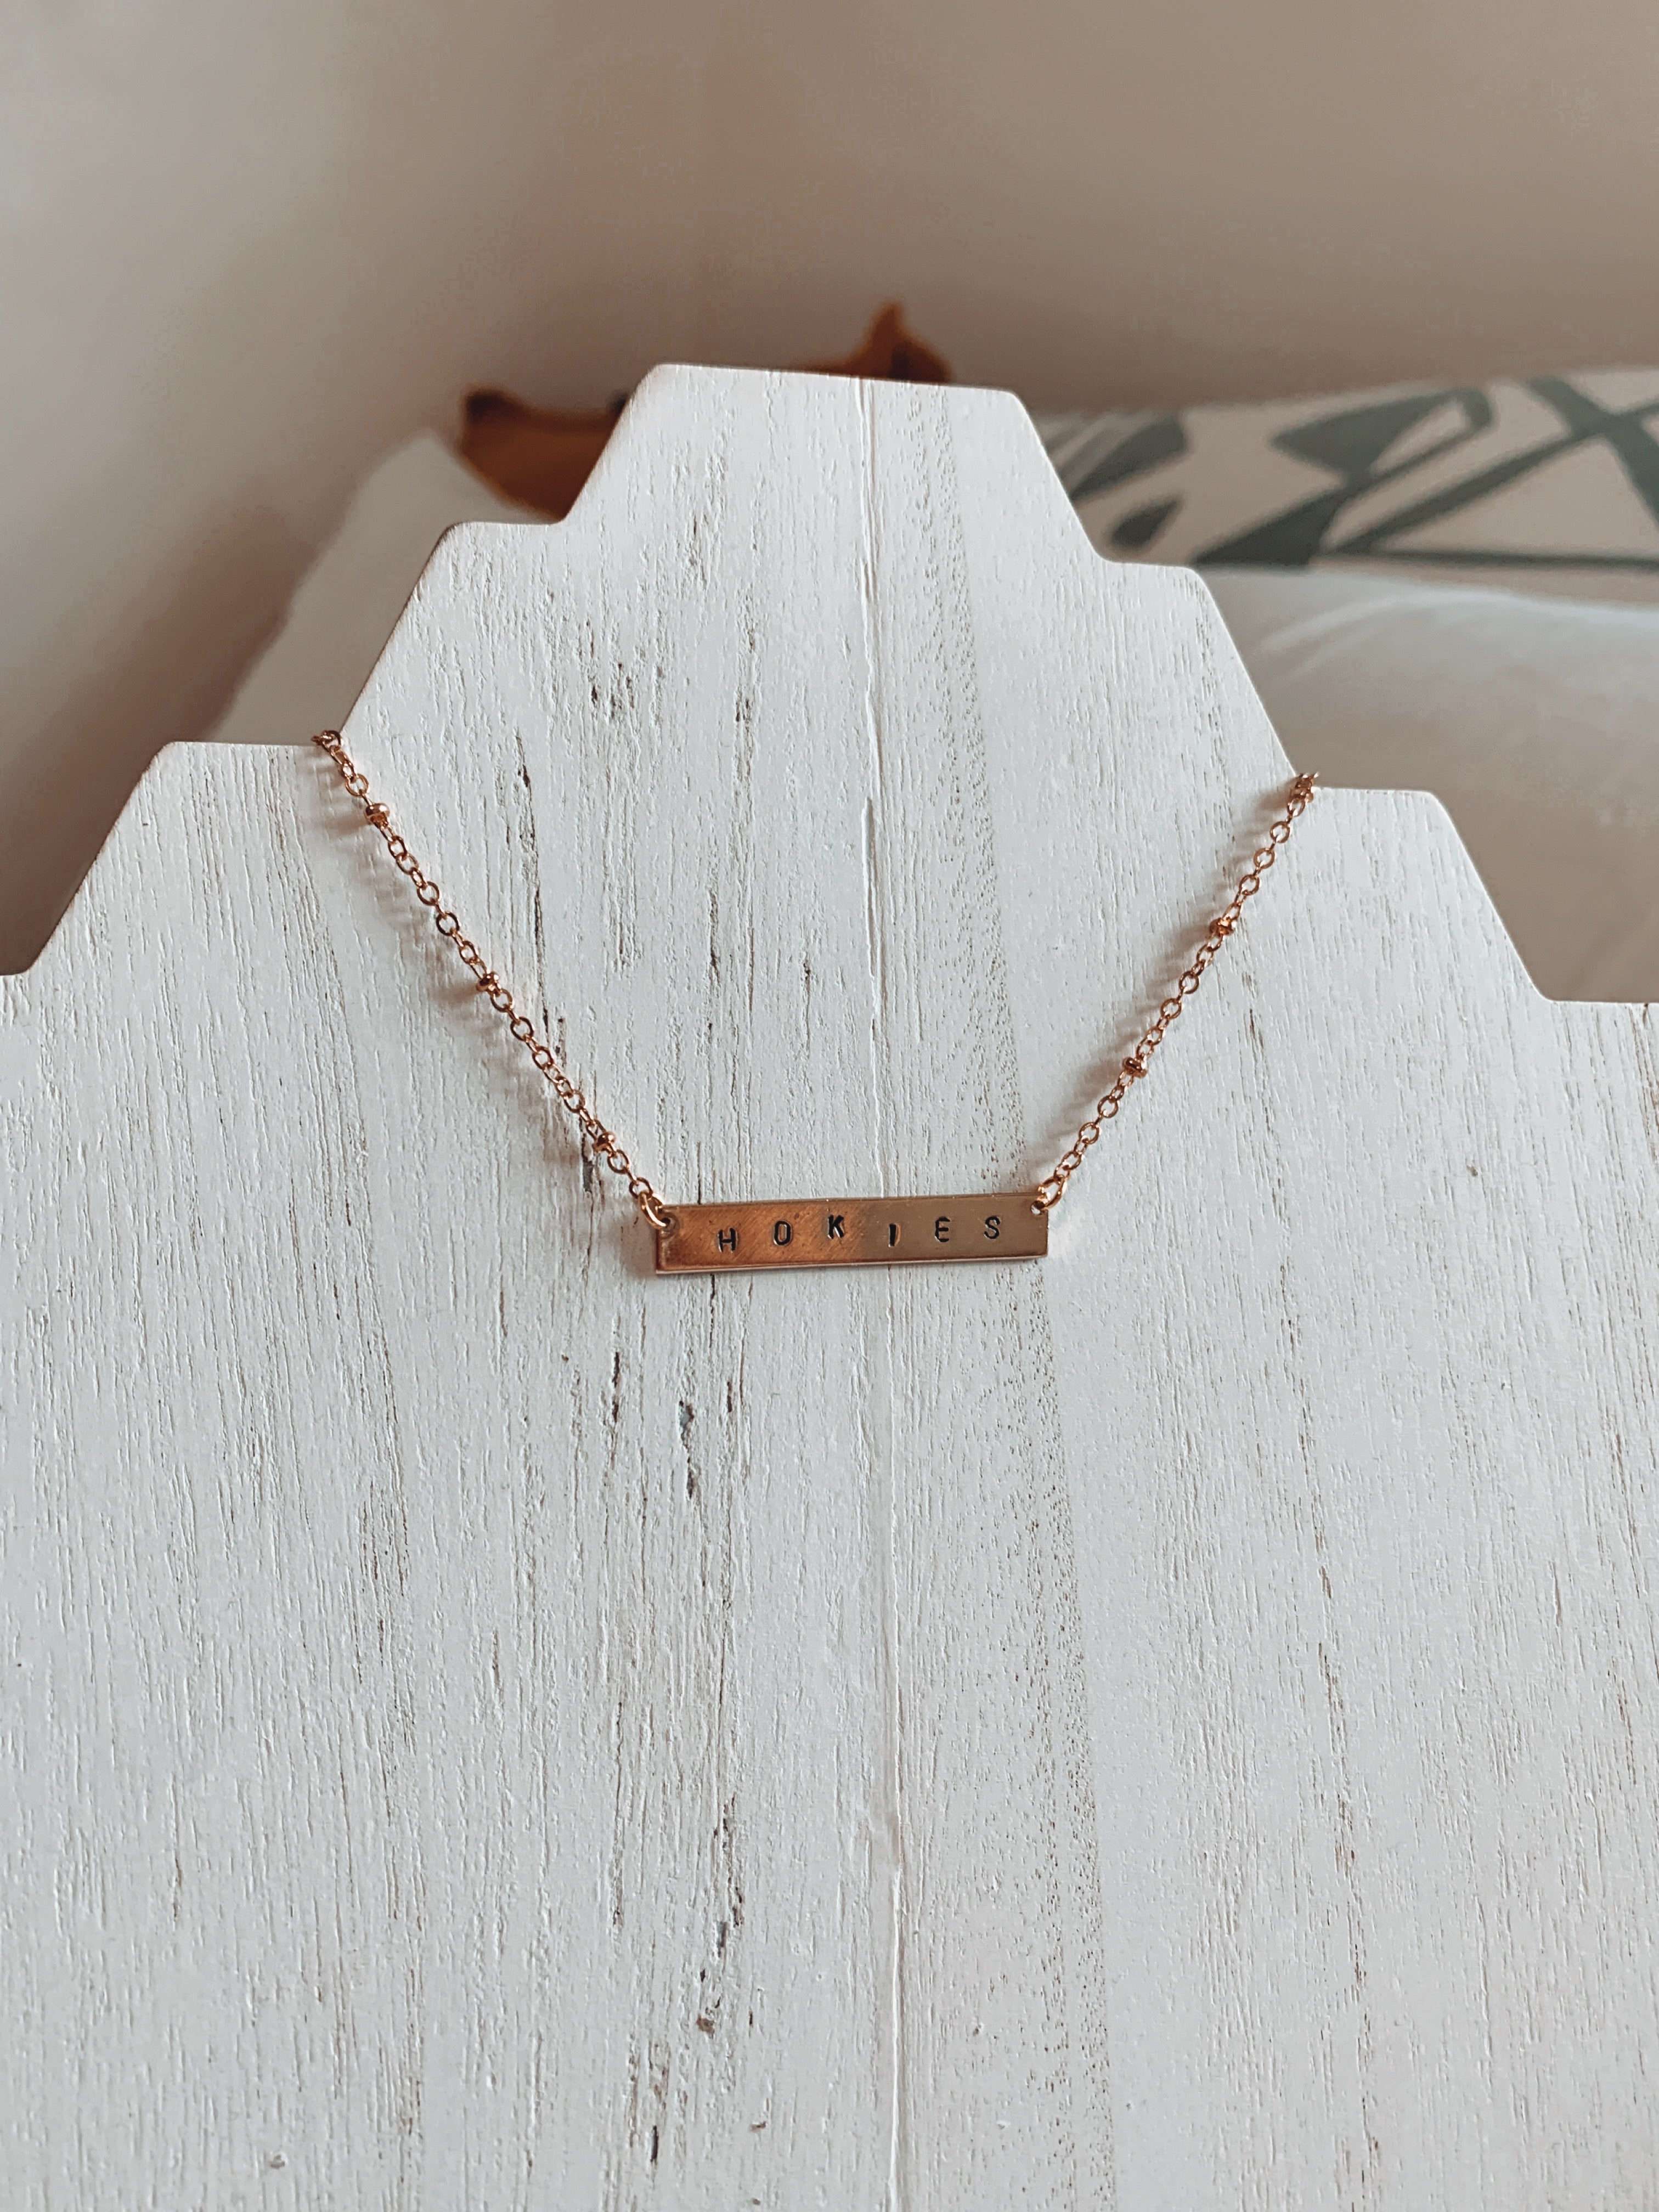 18k Gold-Coated Customized Bar Necklace - Talay Jewelry